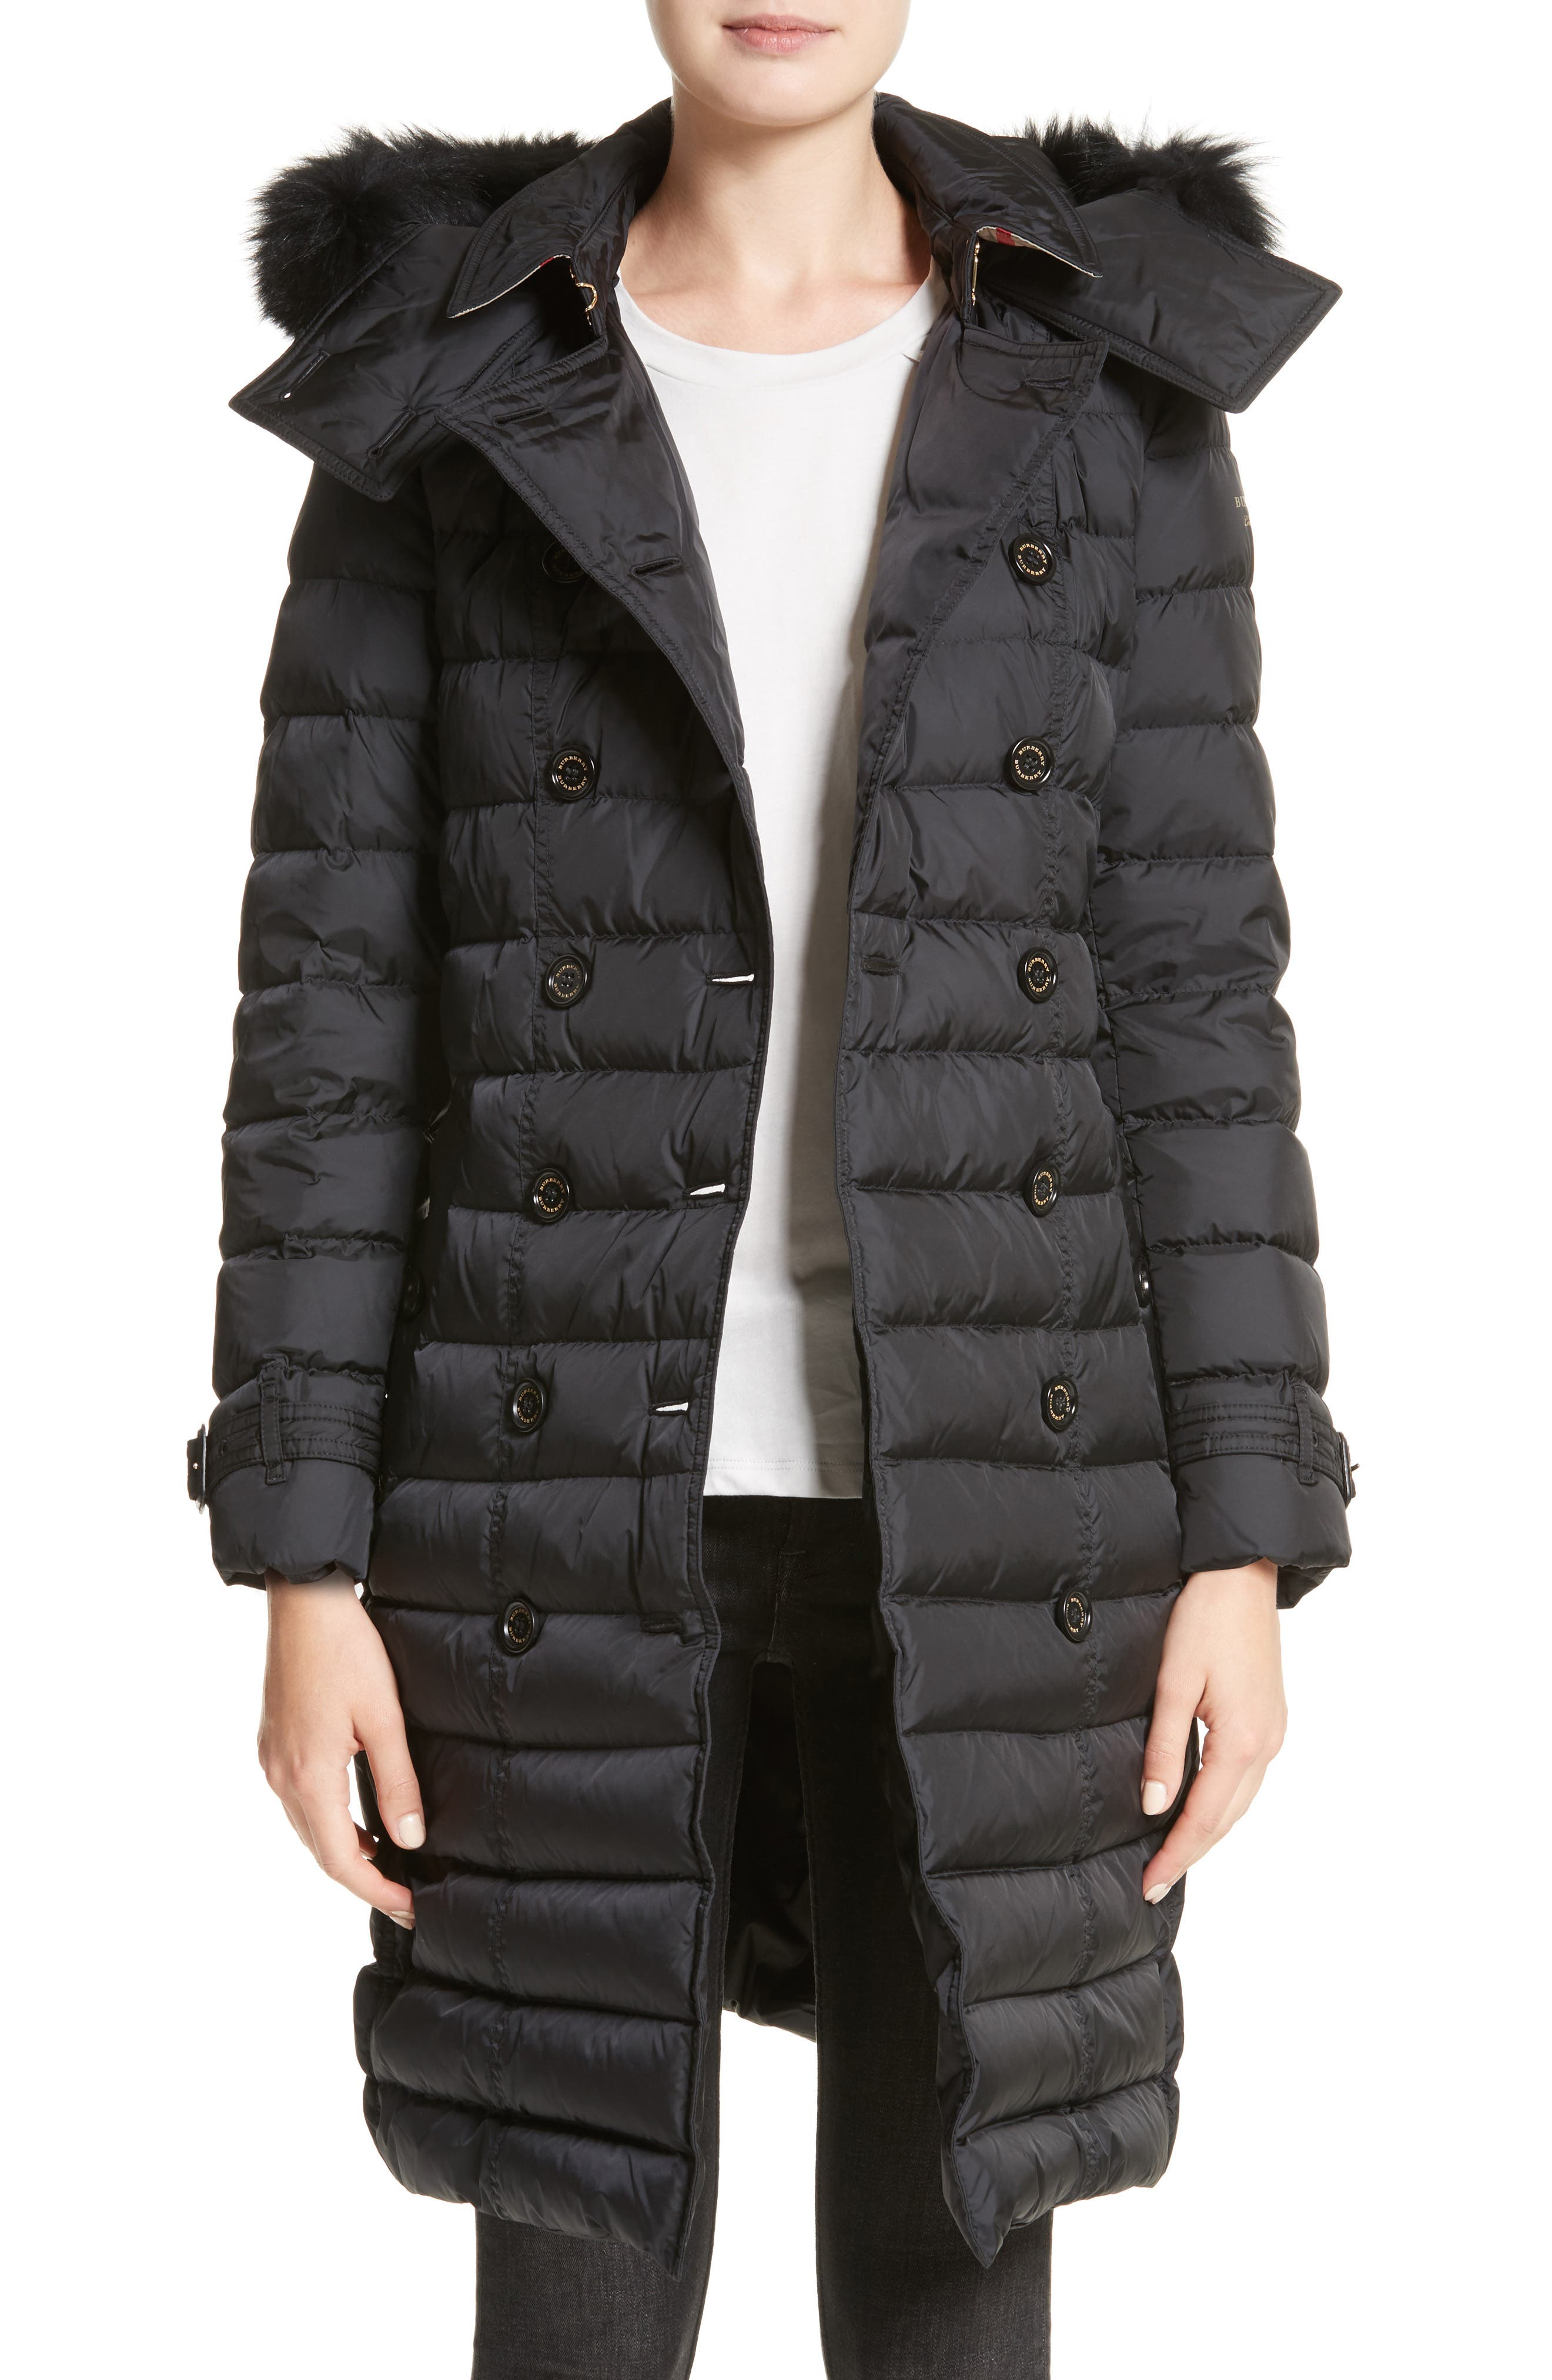 Alternate Image 1 Selected - Burberry Hooded Down Puffer Coat with Genuine Fox Fur Trim